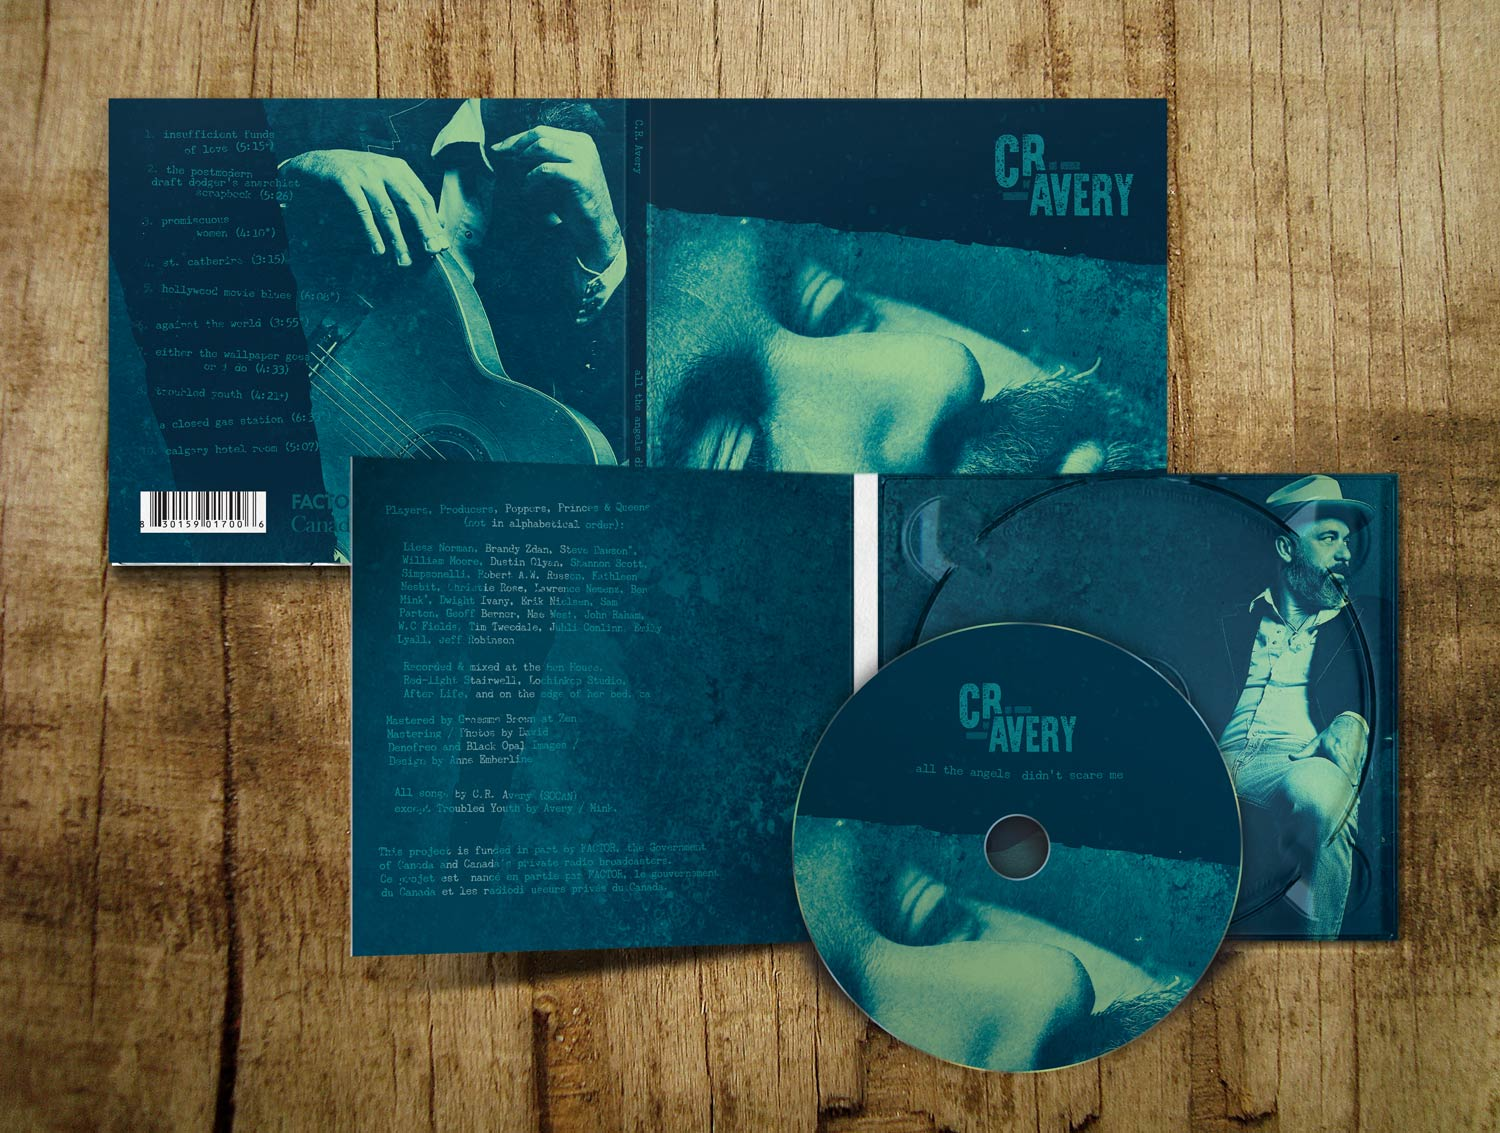 CR Avery CD Package Design